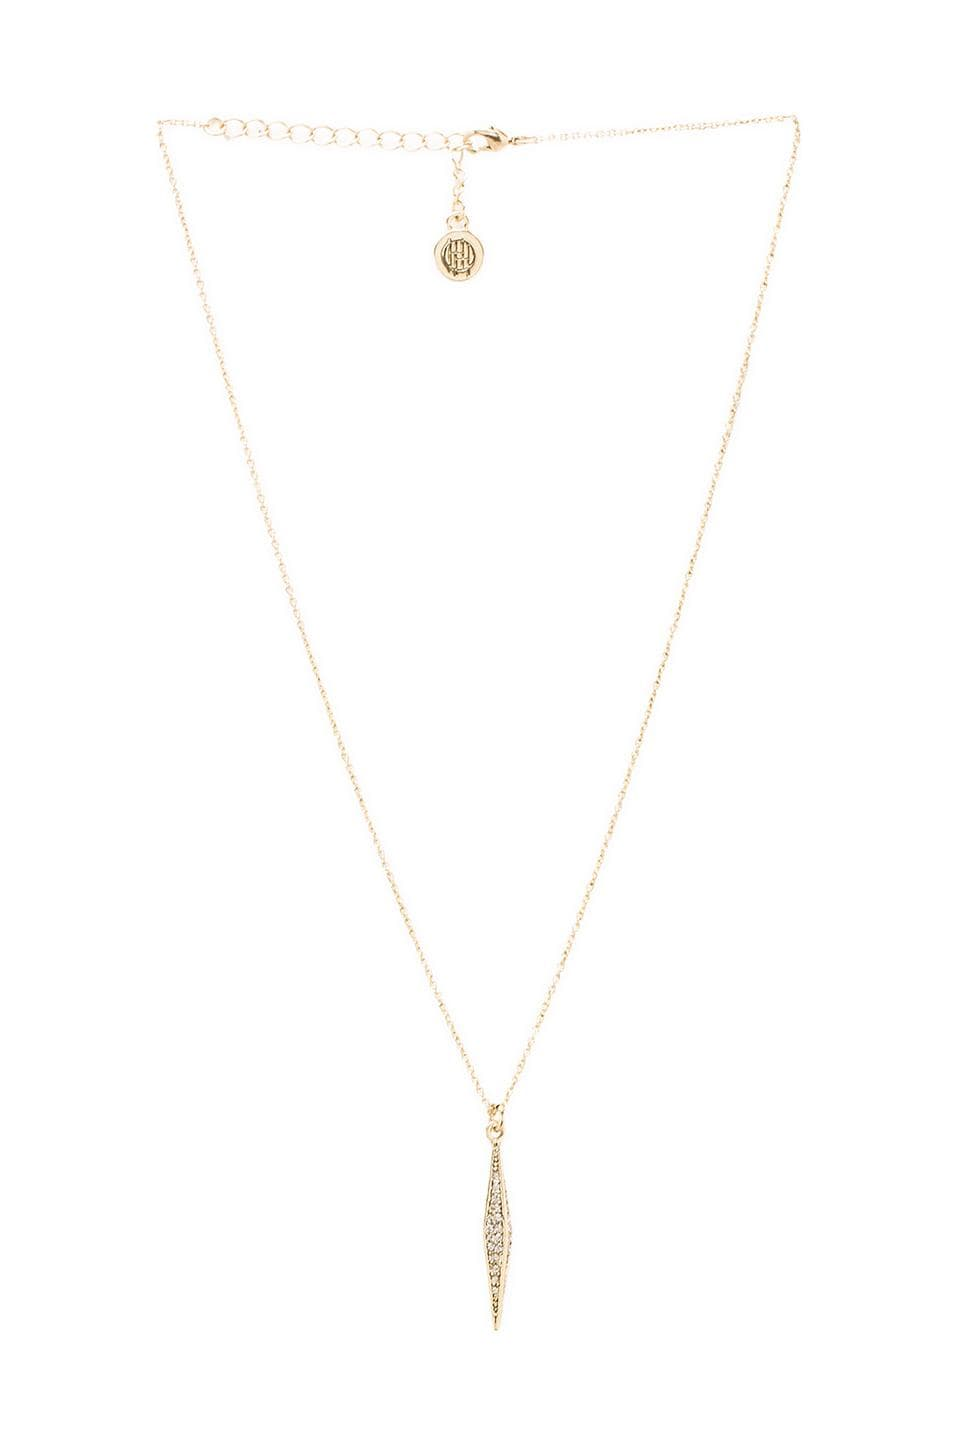 House of Harlow Sparkling Marquis Pendant Necklace in Gold